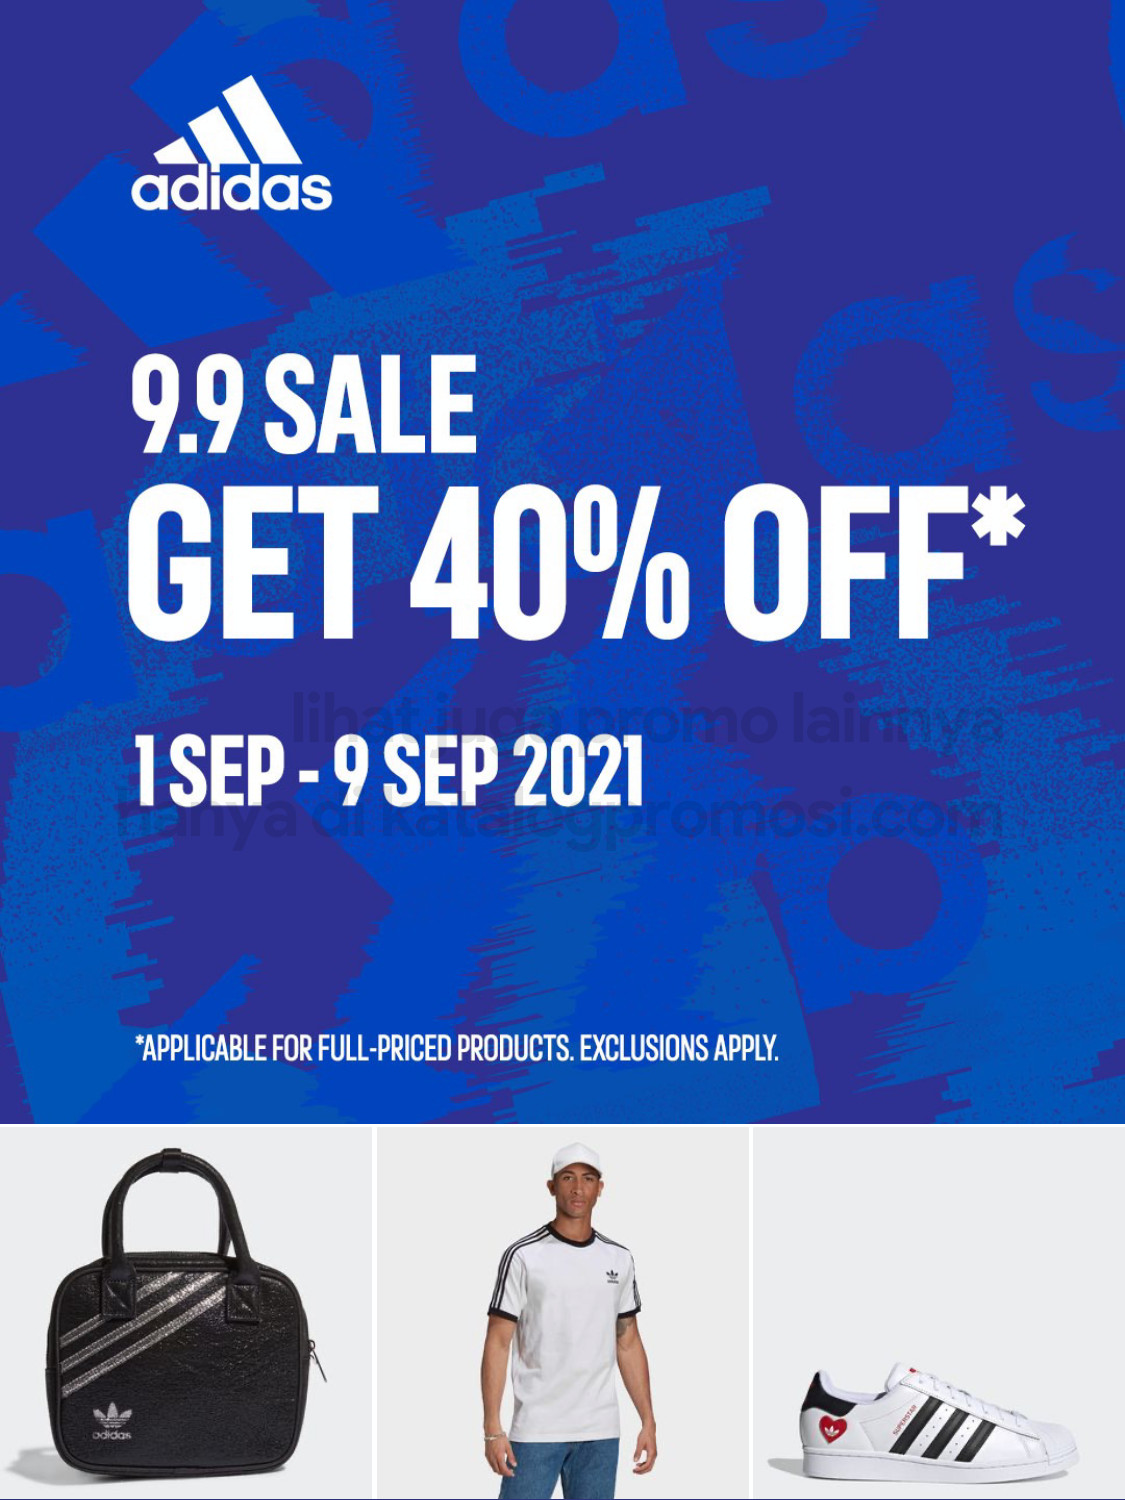 PROMO ADIDAS 9.9 SALE - DISCOUNT up to 40% off